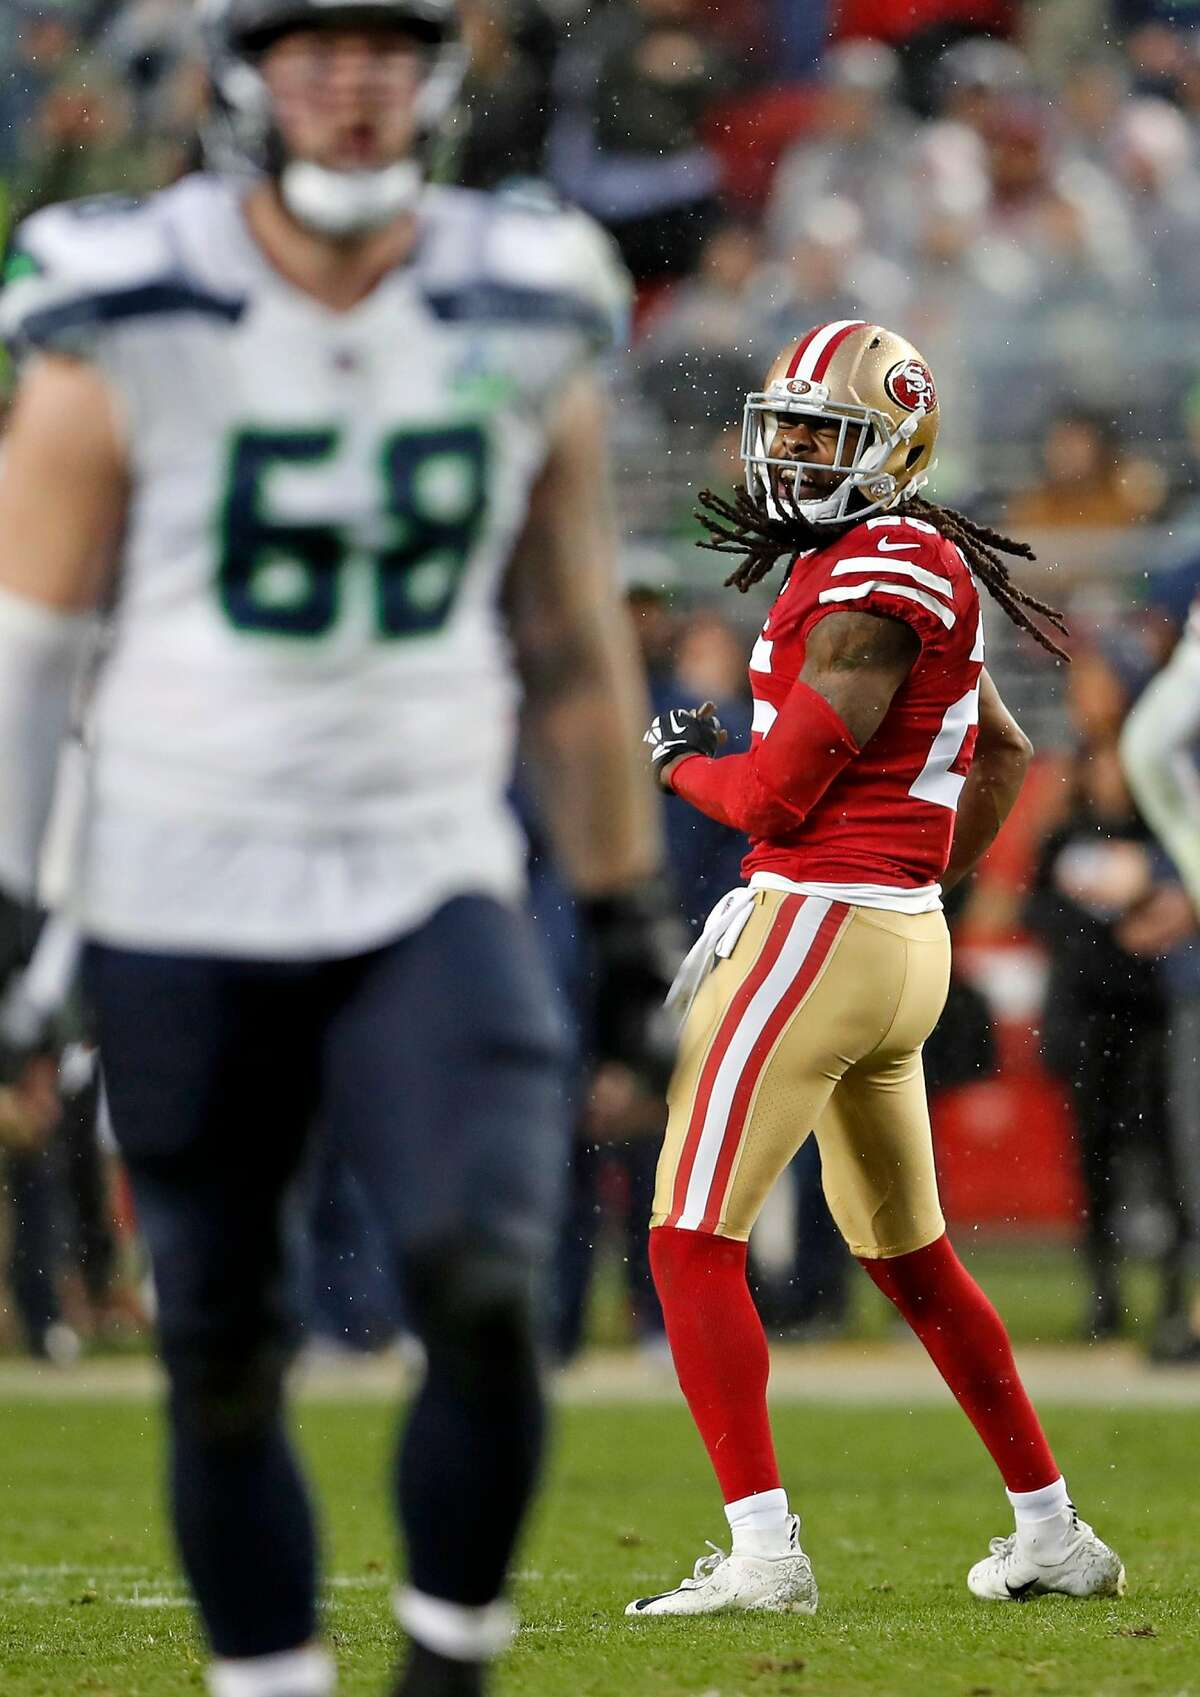 San Francisco 49ers' Richard Sherman enjoys a penalty call on Seattle Seahawks in overtime during Niners' 26-23 win in NFL game at Levi's Stadium in Santa Clara, Calif. on Sunday, December 16, 2018.